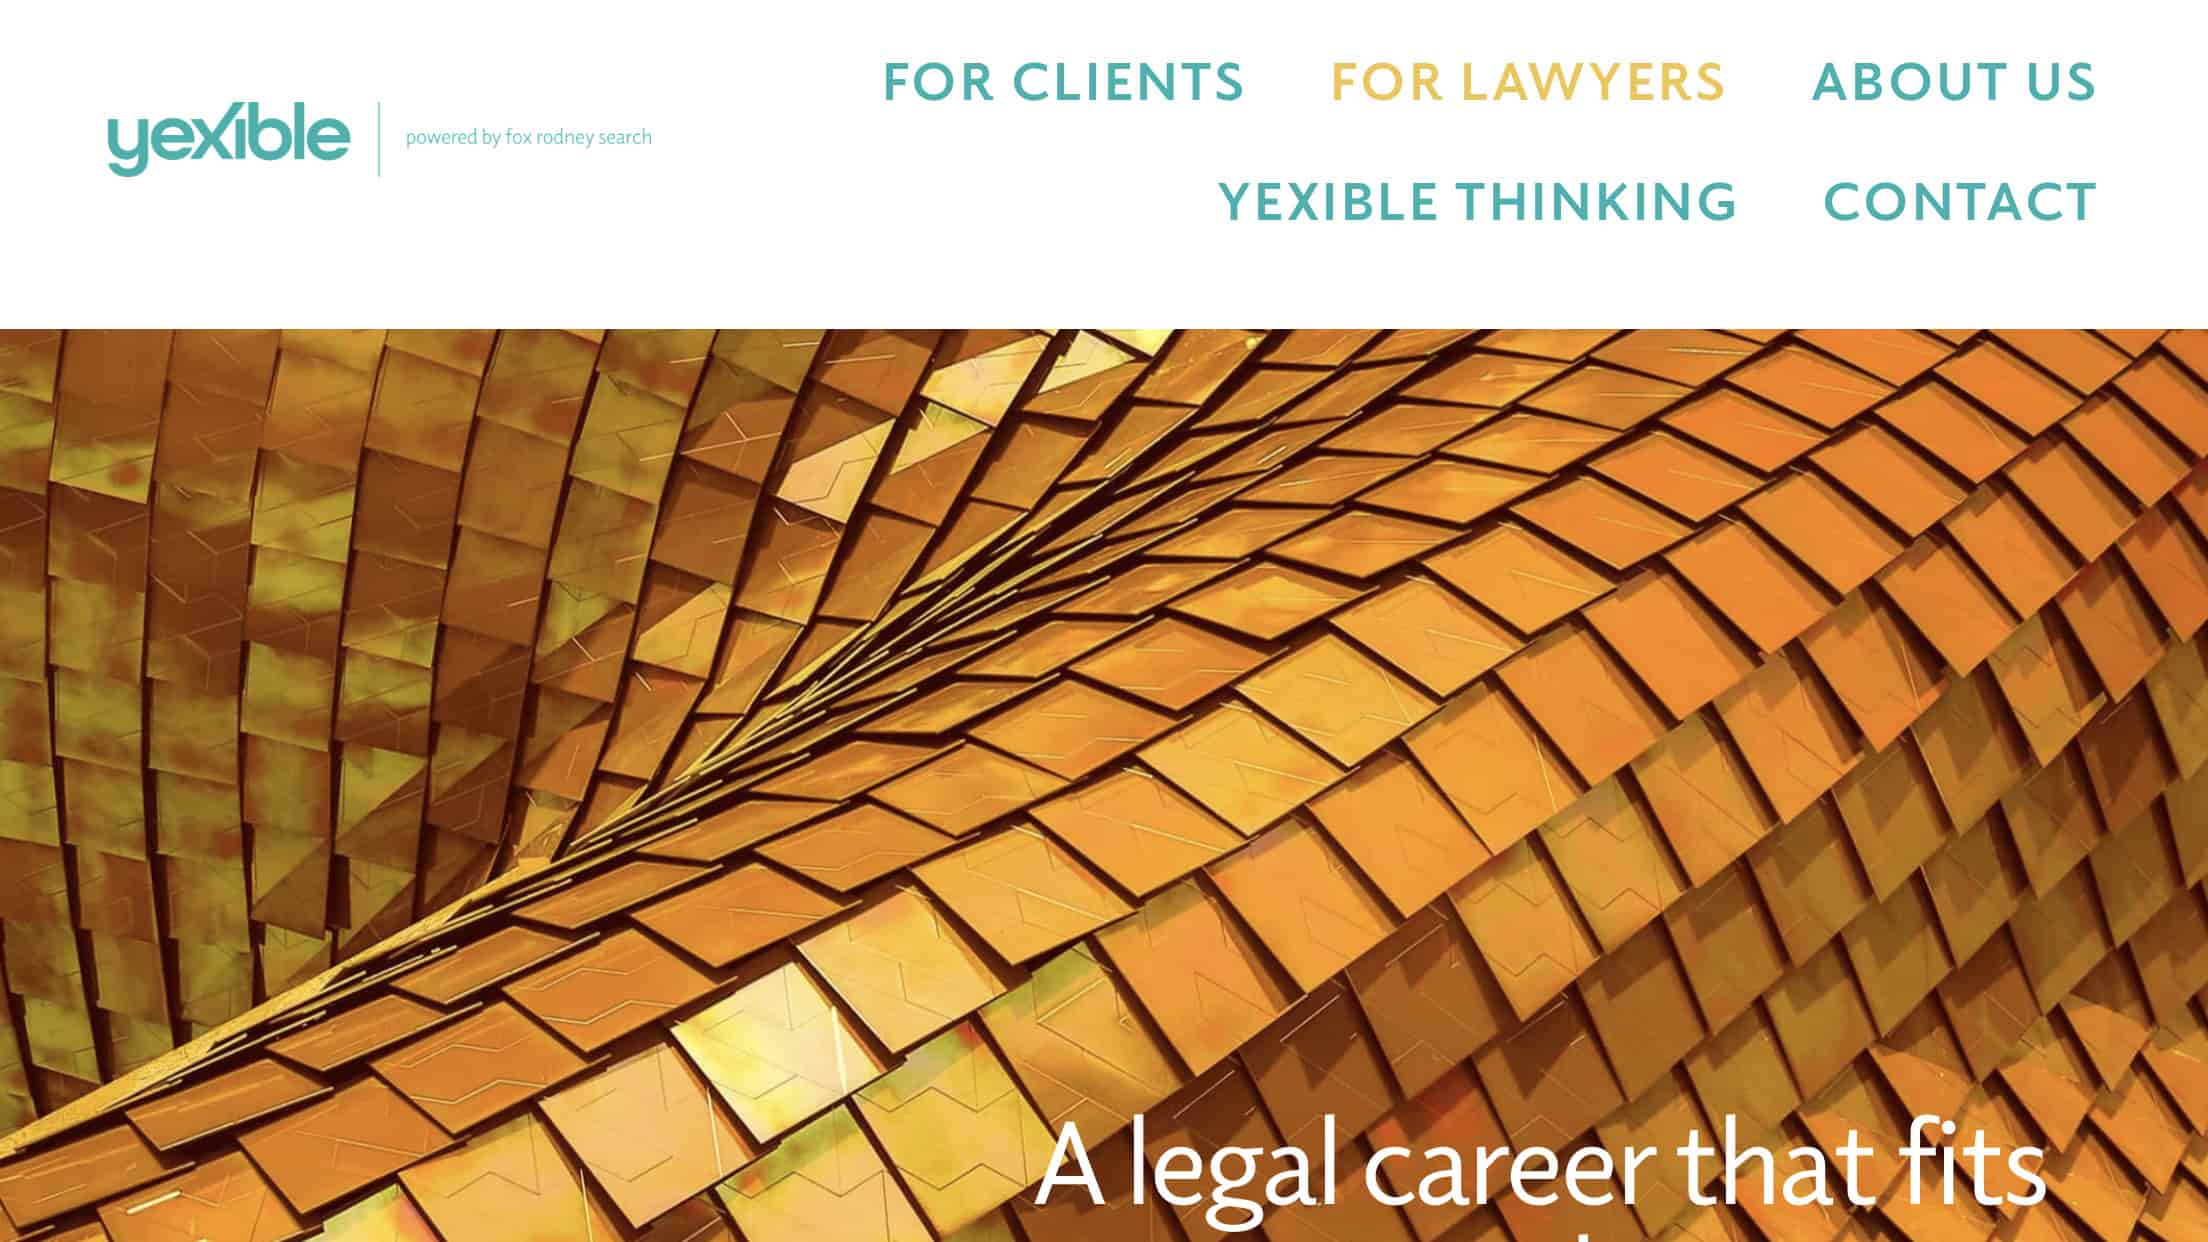 Brief: London based recruitment firm needed a website to launch a new division. Focusing on the rapidly evolving New Law market, the use of abstract imagery, modern language and consistent branding were important. - visit www.yexible.com